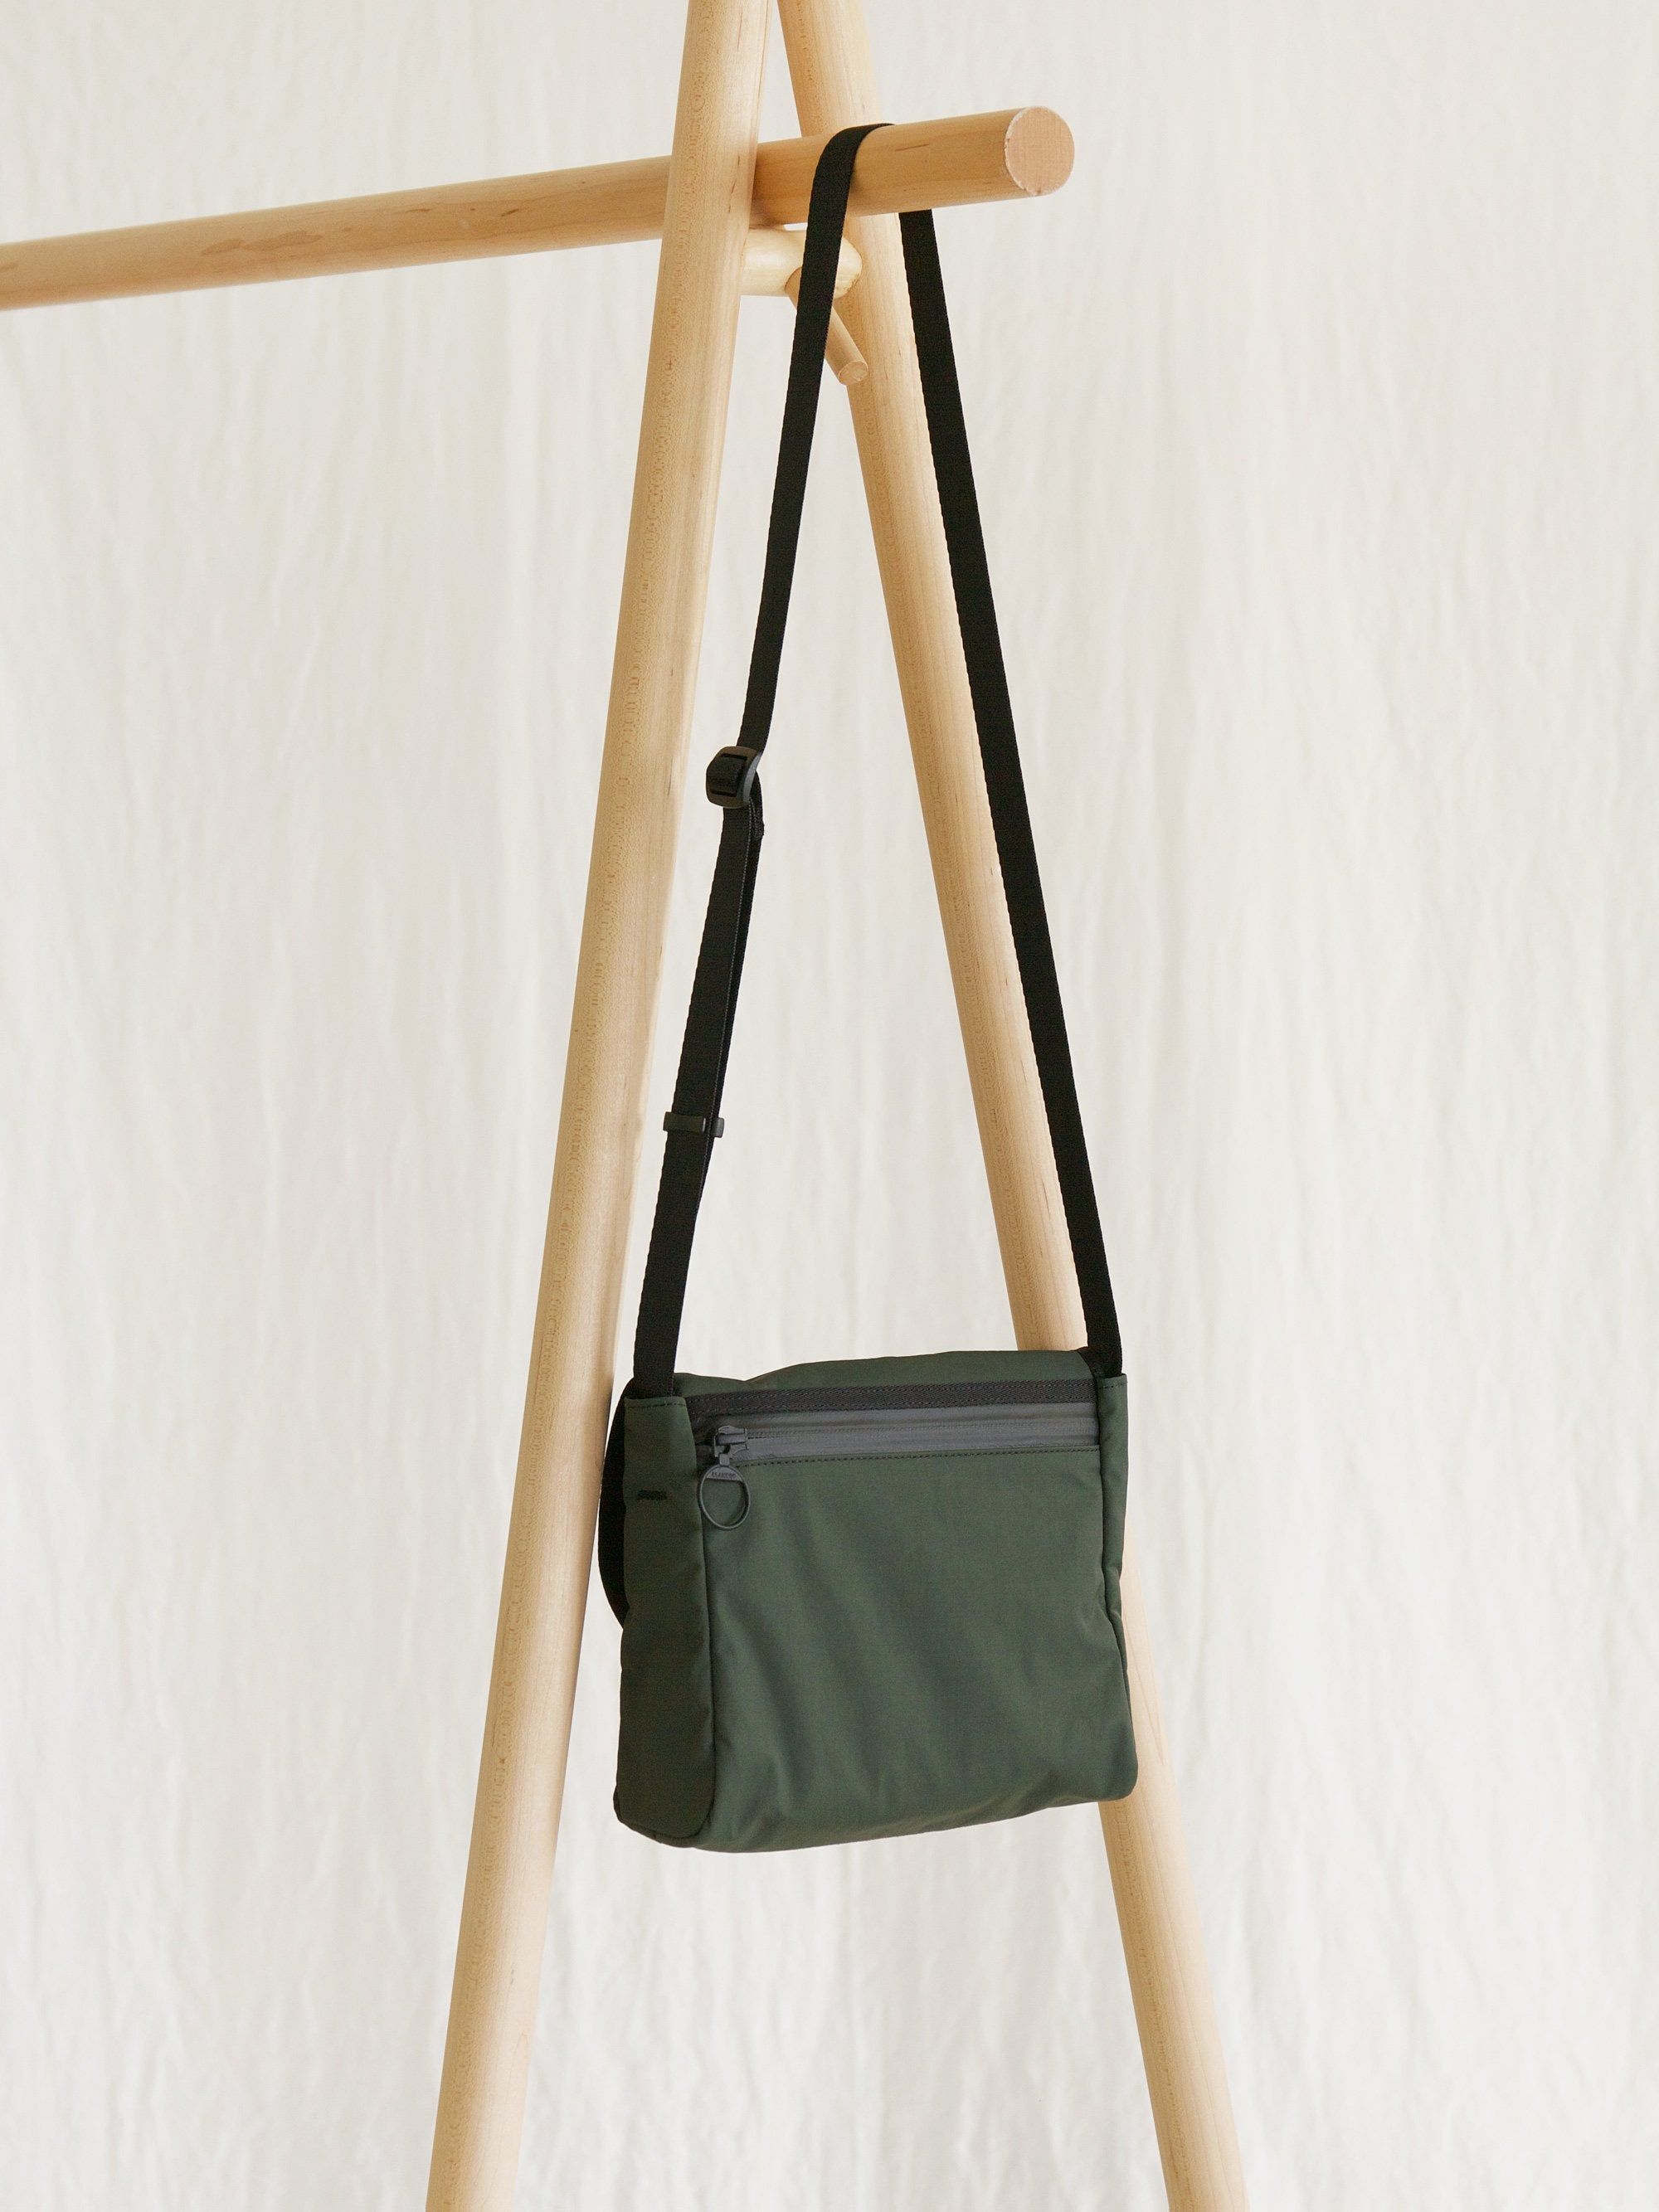 Namu Shop - Eastlogue Medicine Bag - Olive Ripstop